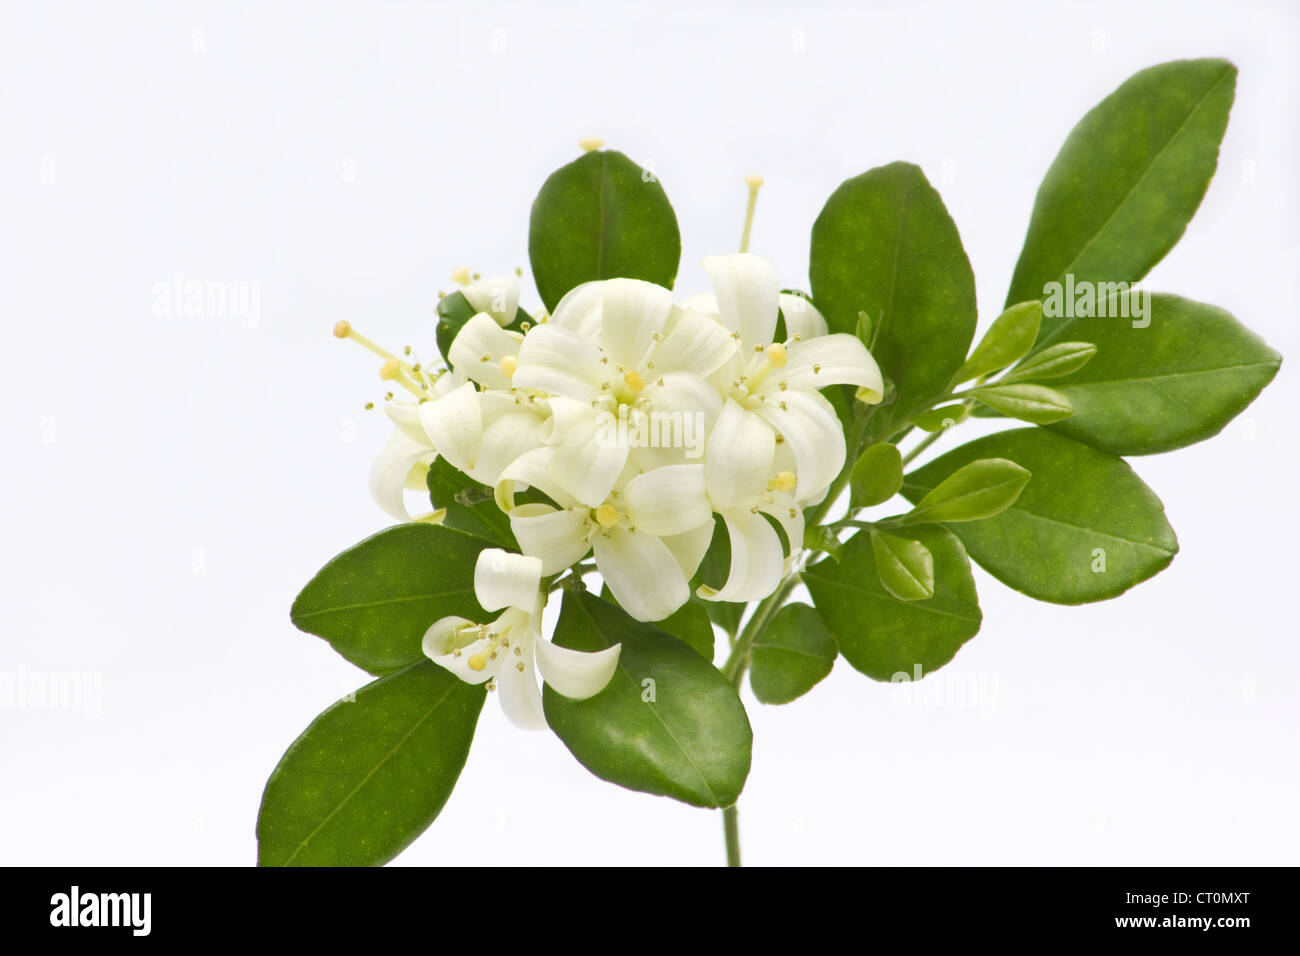 Murraya Plant High Resolution Stock Photography And Images Alamy